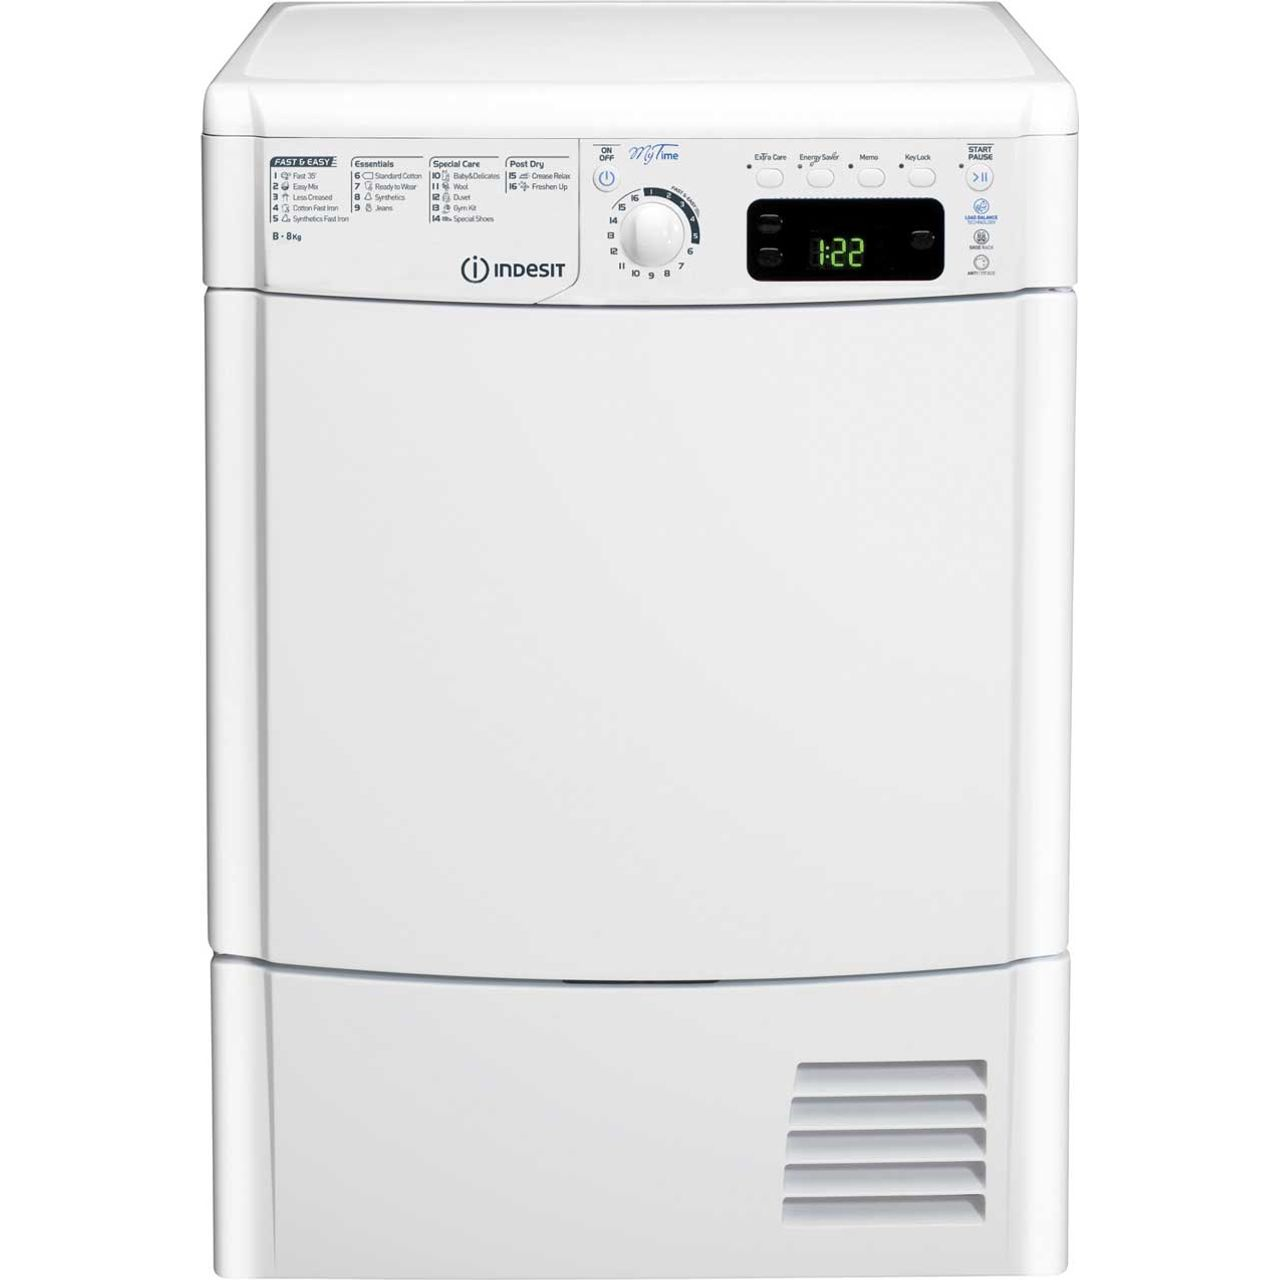 buy cheap indesit tumble dryer compare tumble dryers. Black Bedroom Furniture Sets. Home Design Ideas